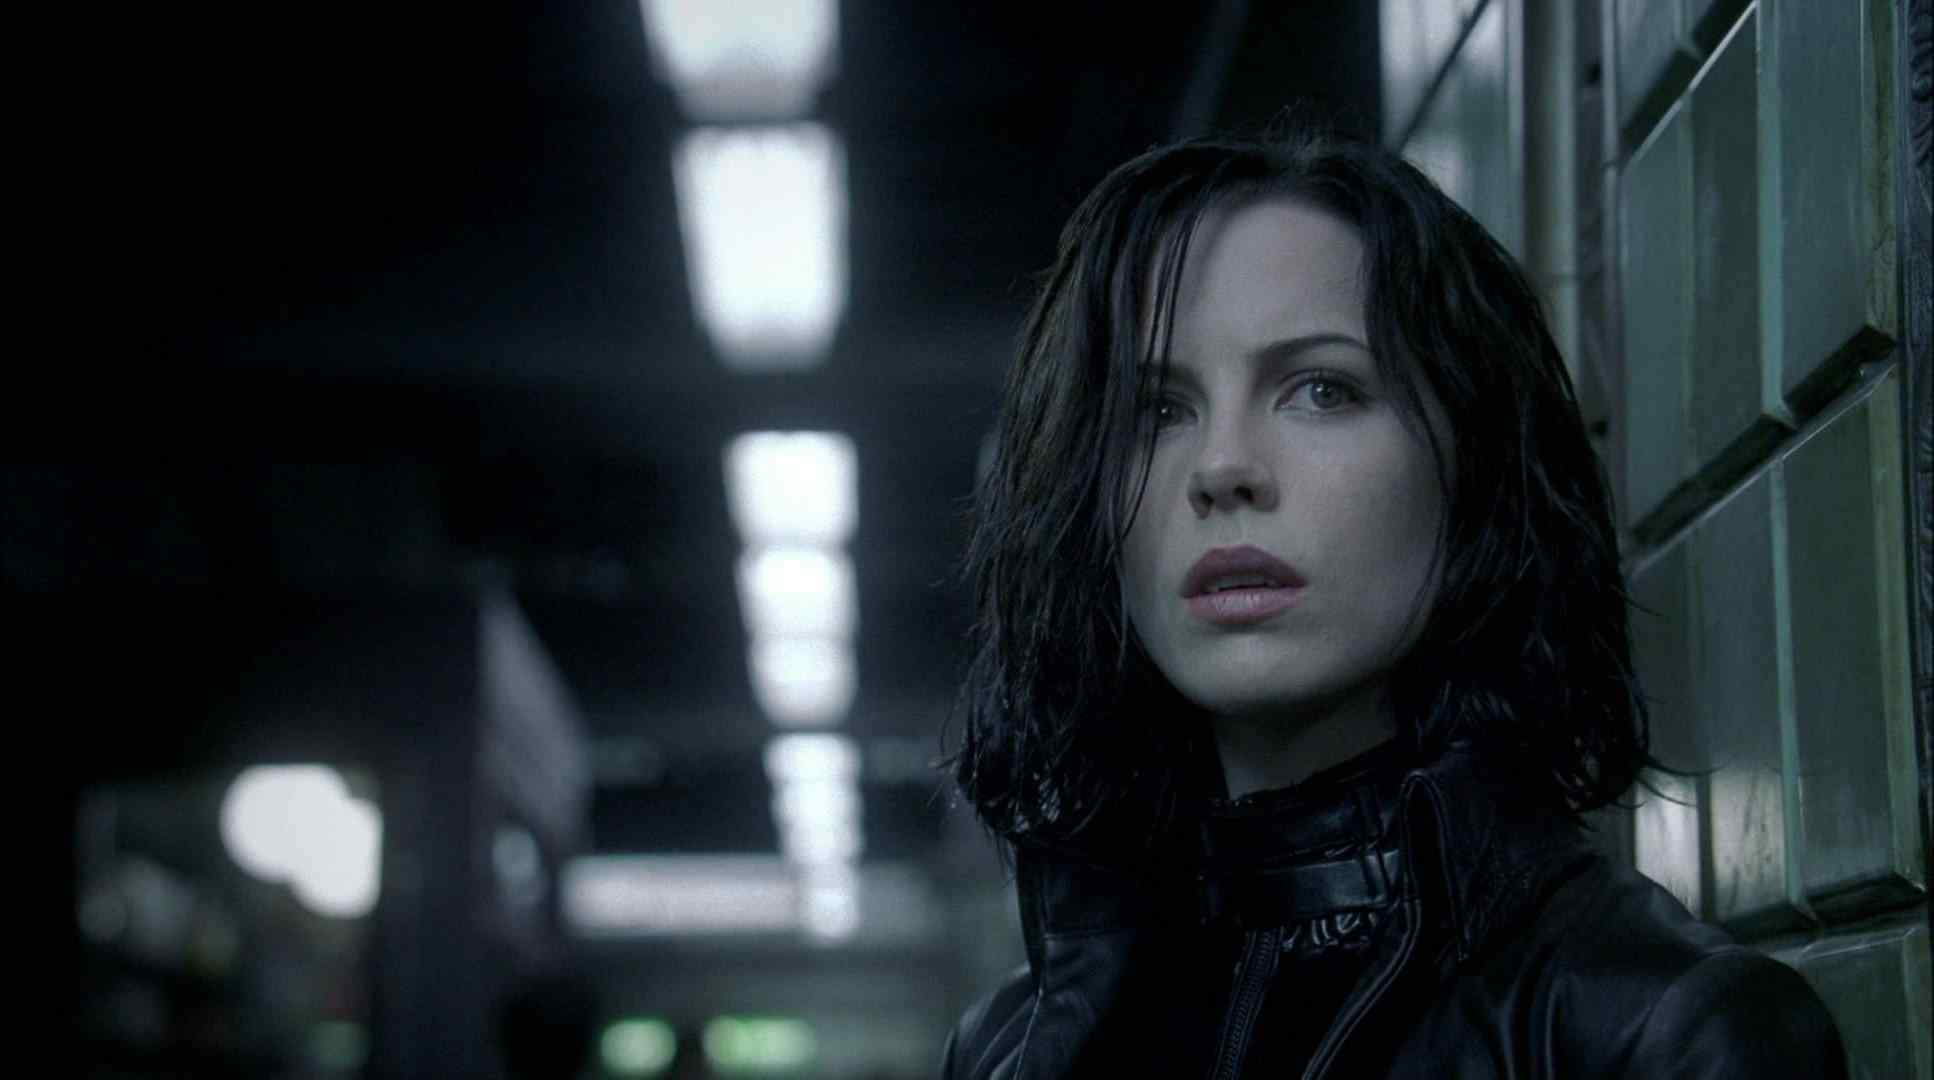 Selene (Kate Beckinsale) in the subway tunnel in Len Wiseman's Underworld.